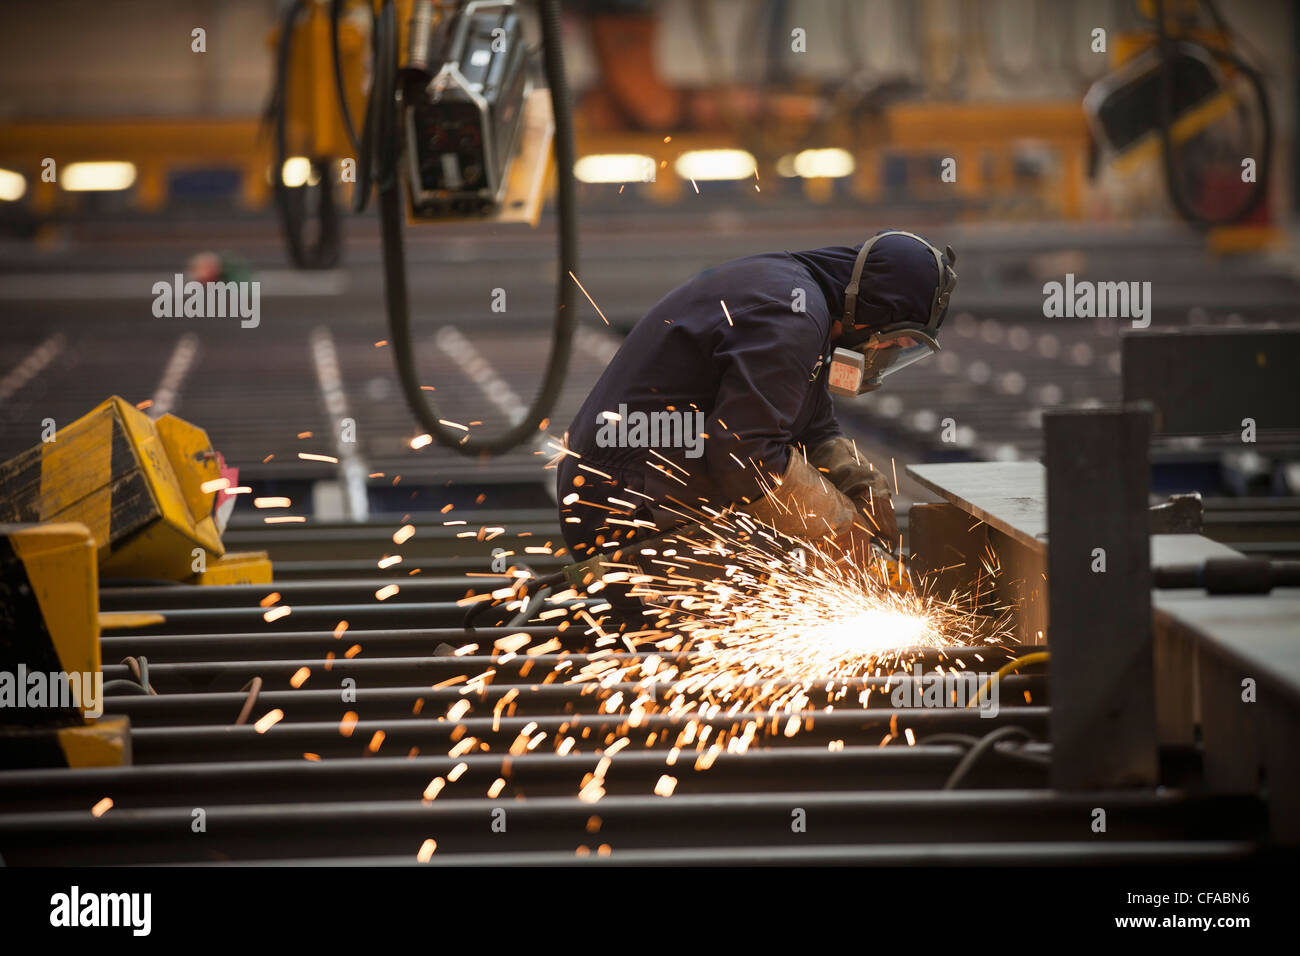 Welder at work in shipyard - Stock Image